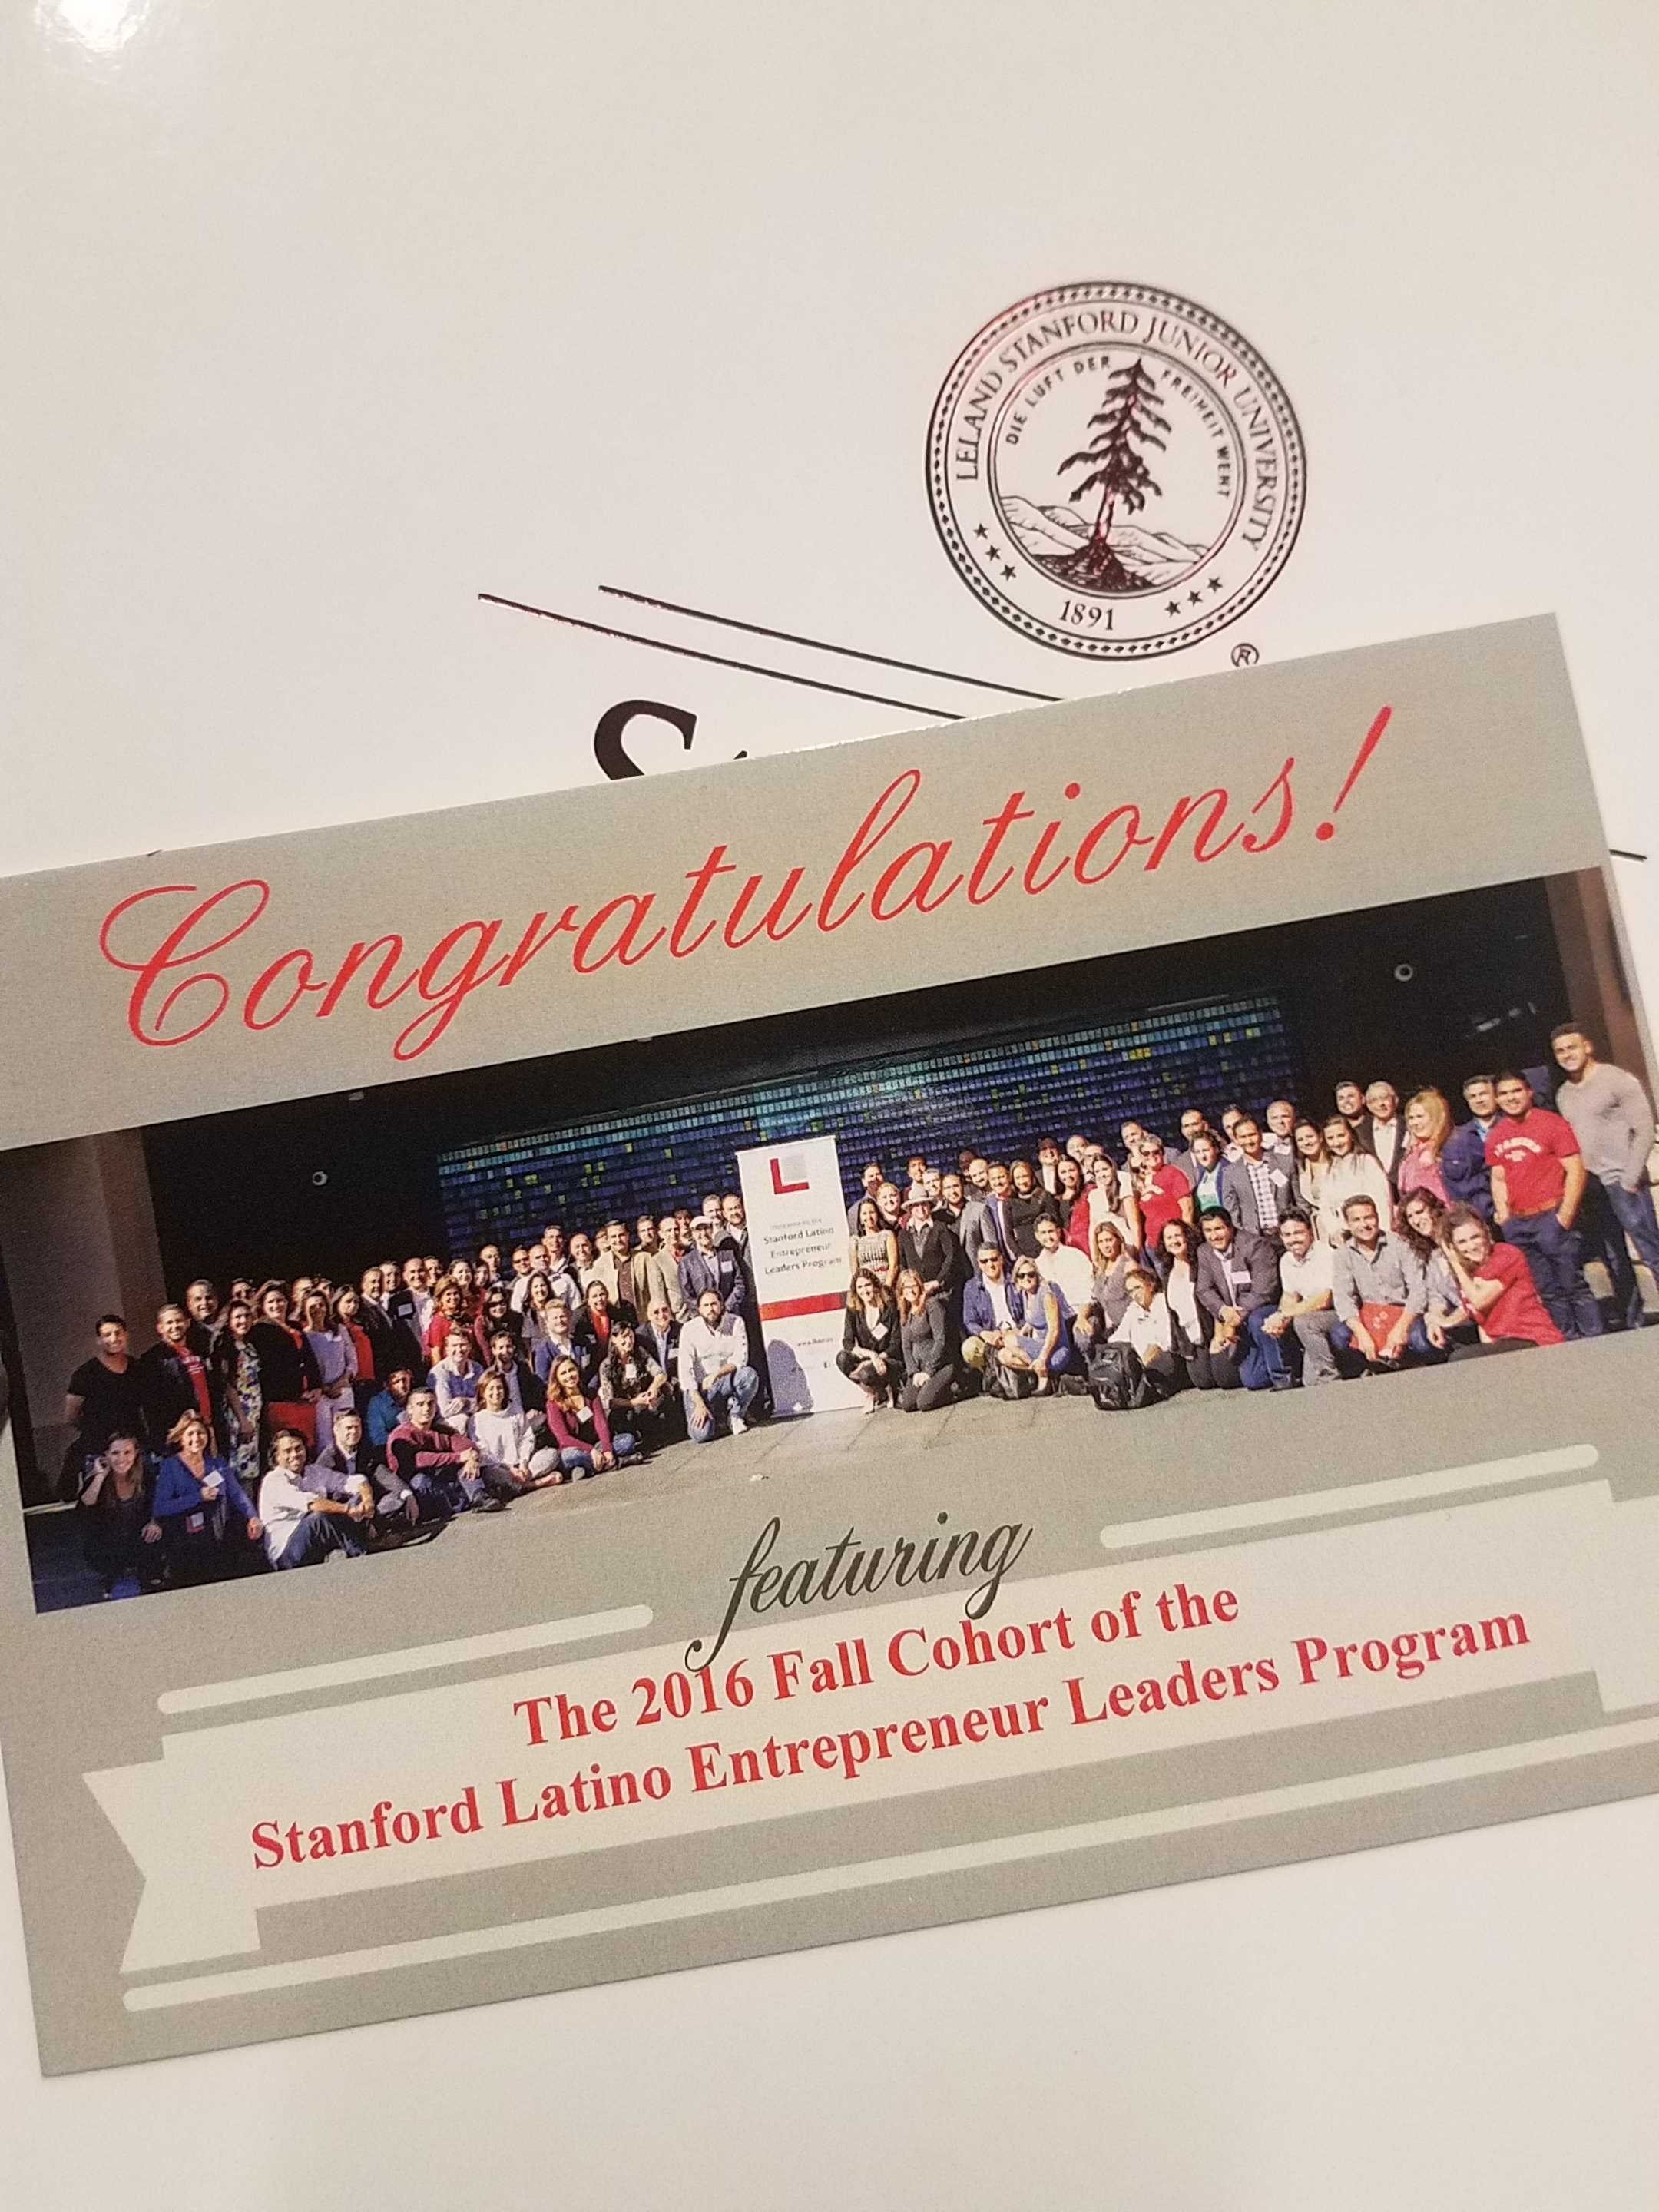 Latina Technology Leader Receives Certificate From Stanford